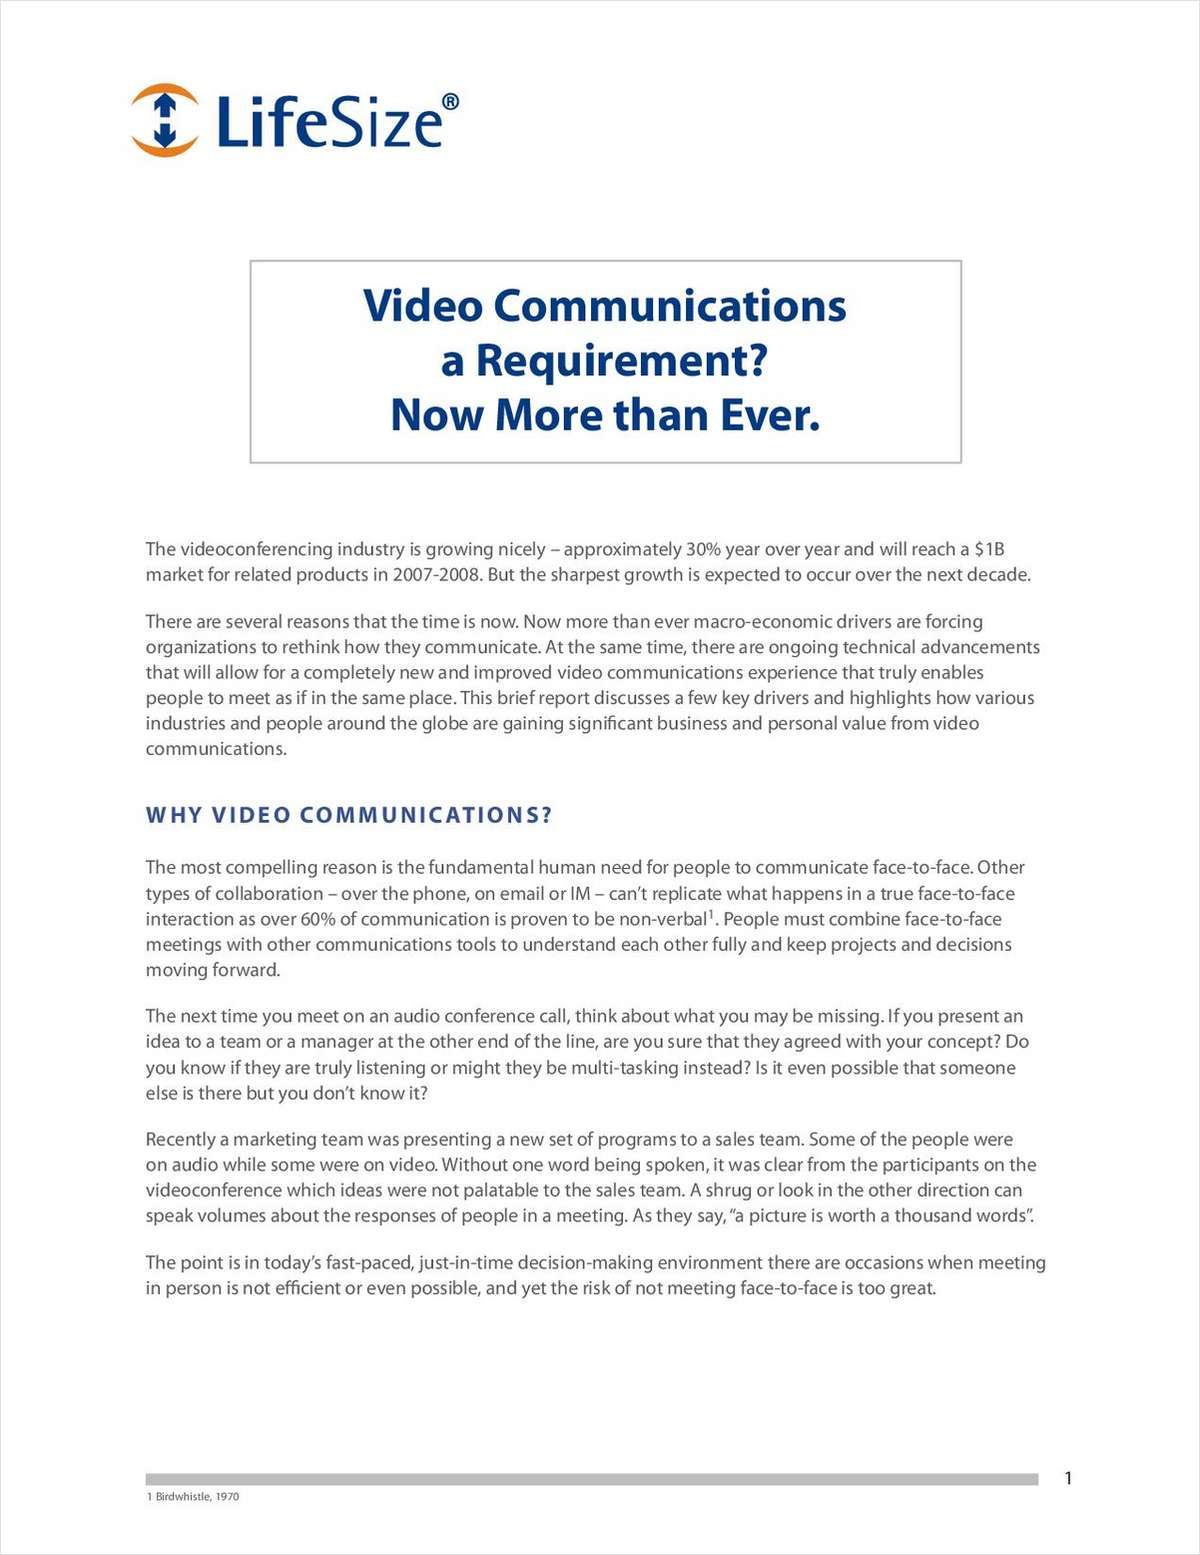 Video Communications a Requirement? Now More than Ever